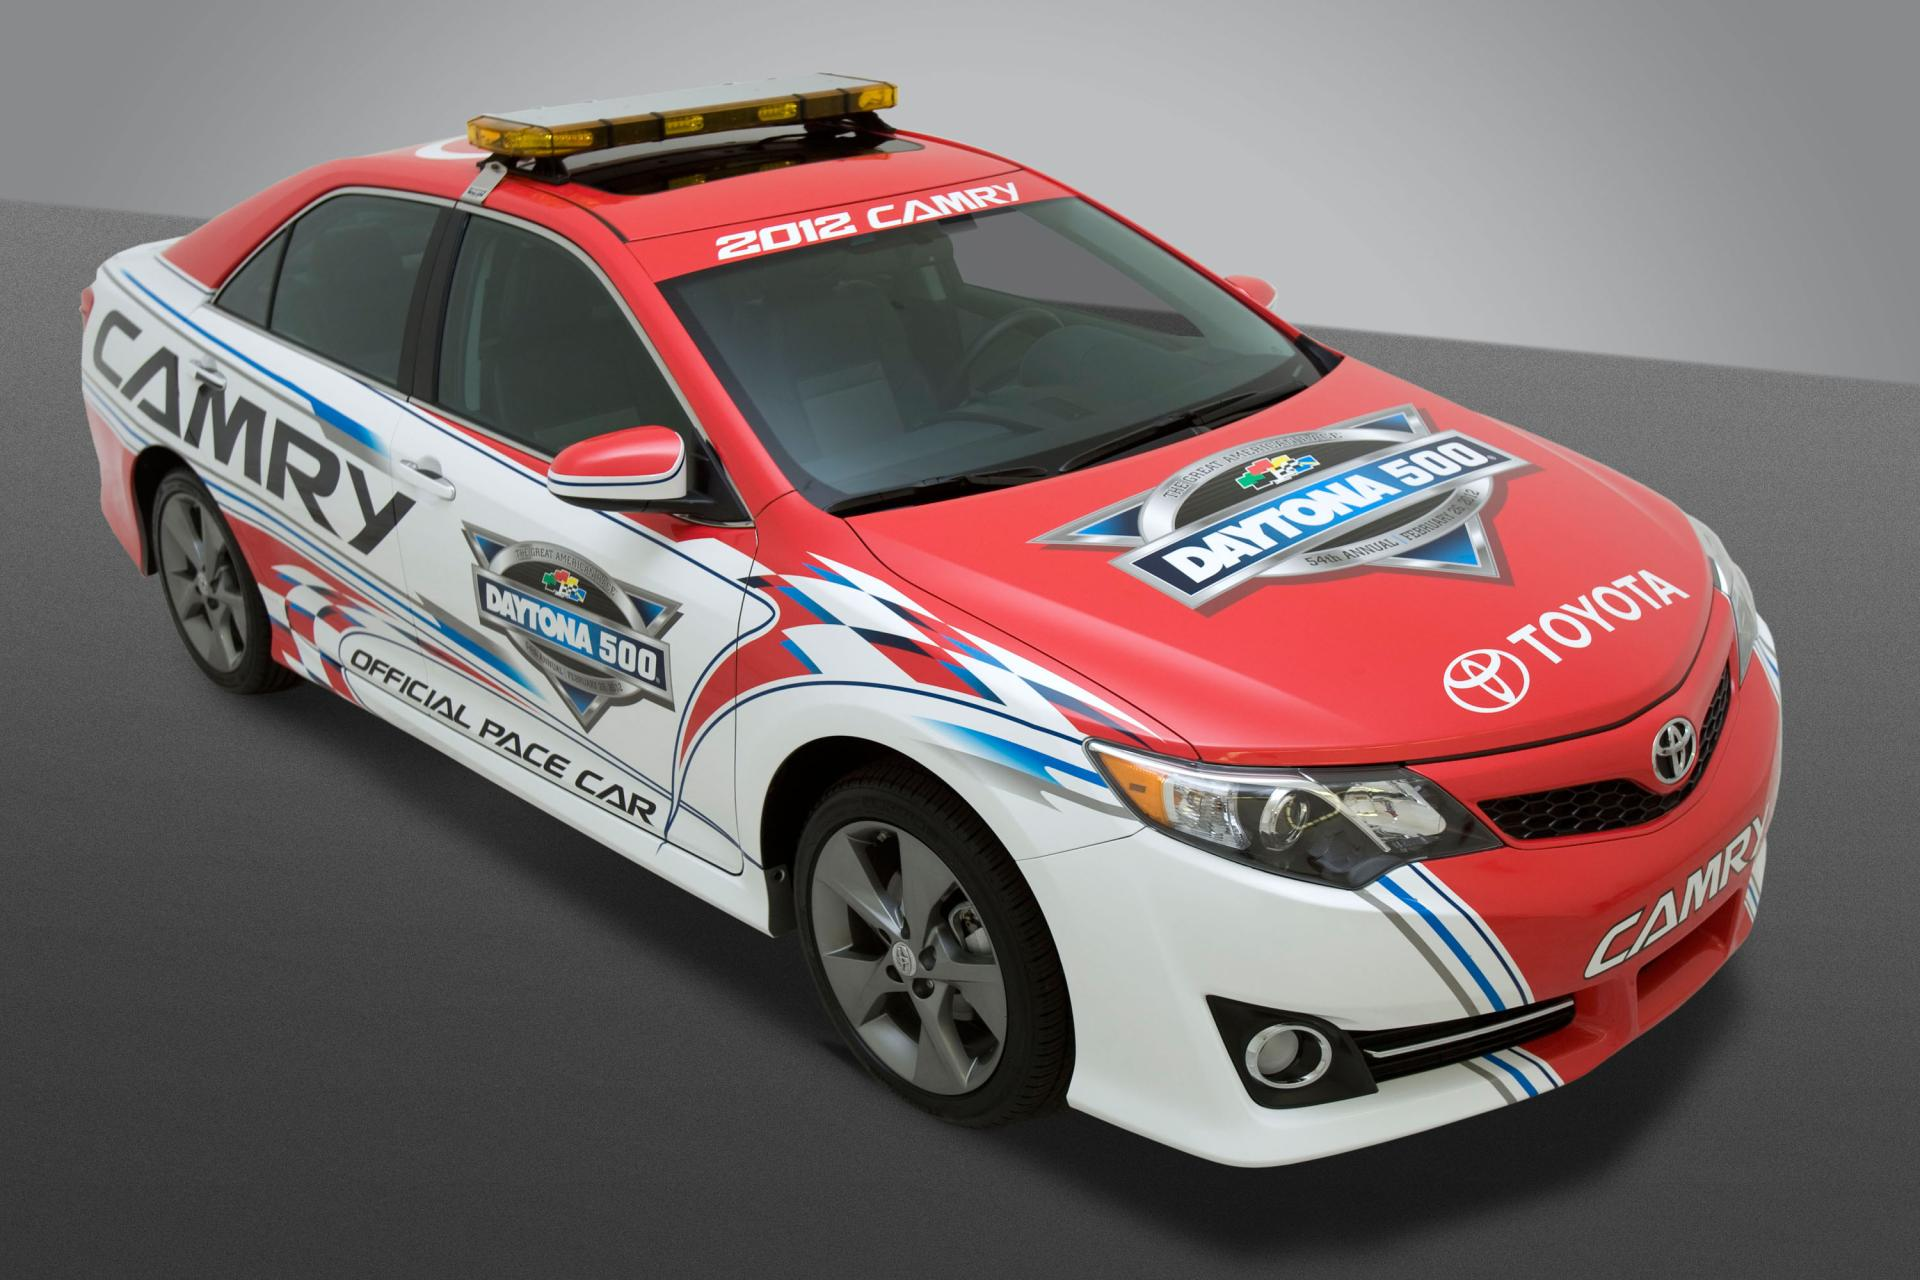 2012 toyota camry daytona 500 pace car news and information. Black Bedroom Furniture Sets. Home Design Ideas